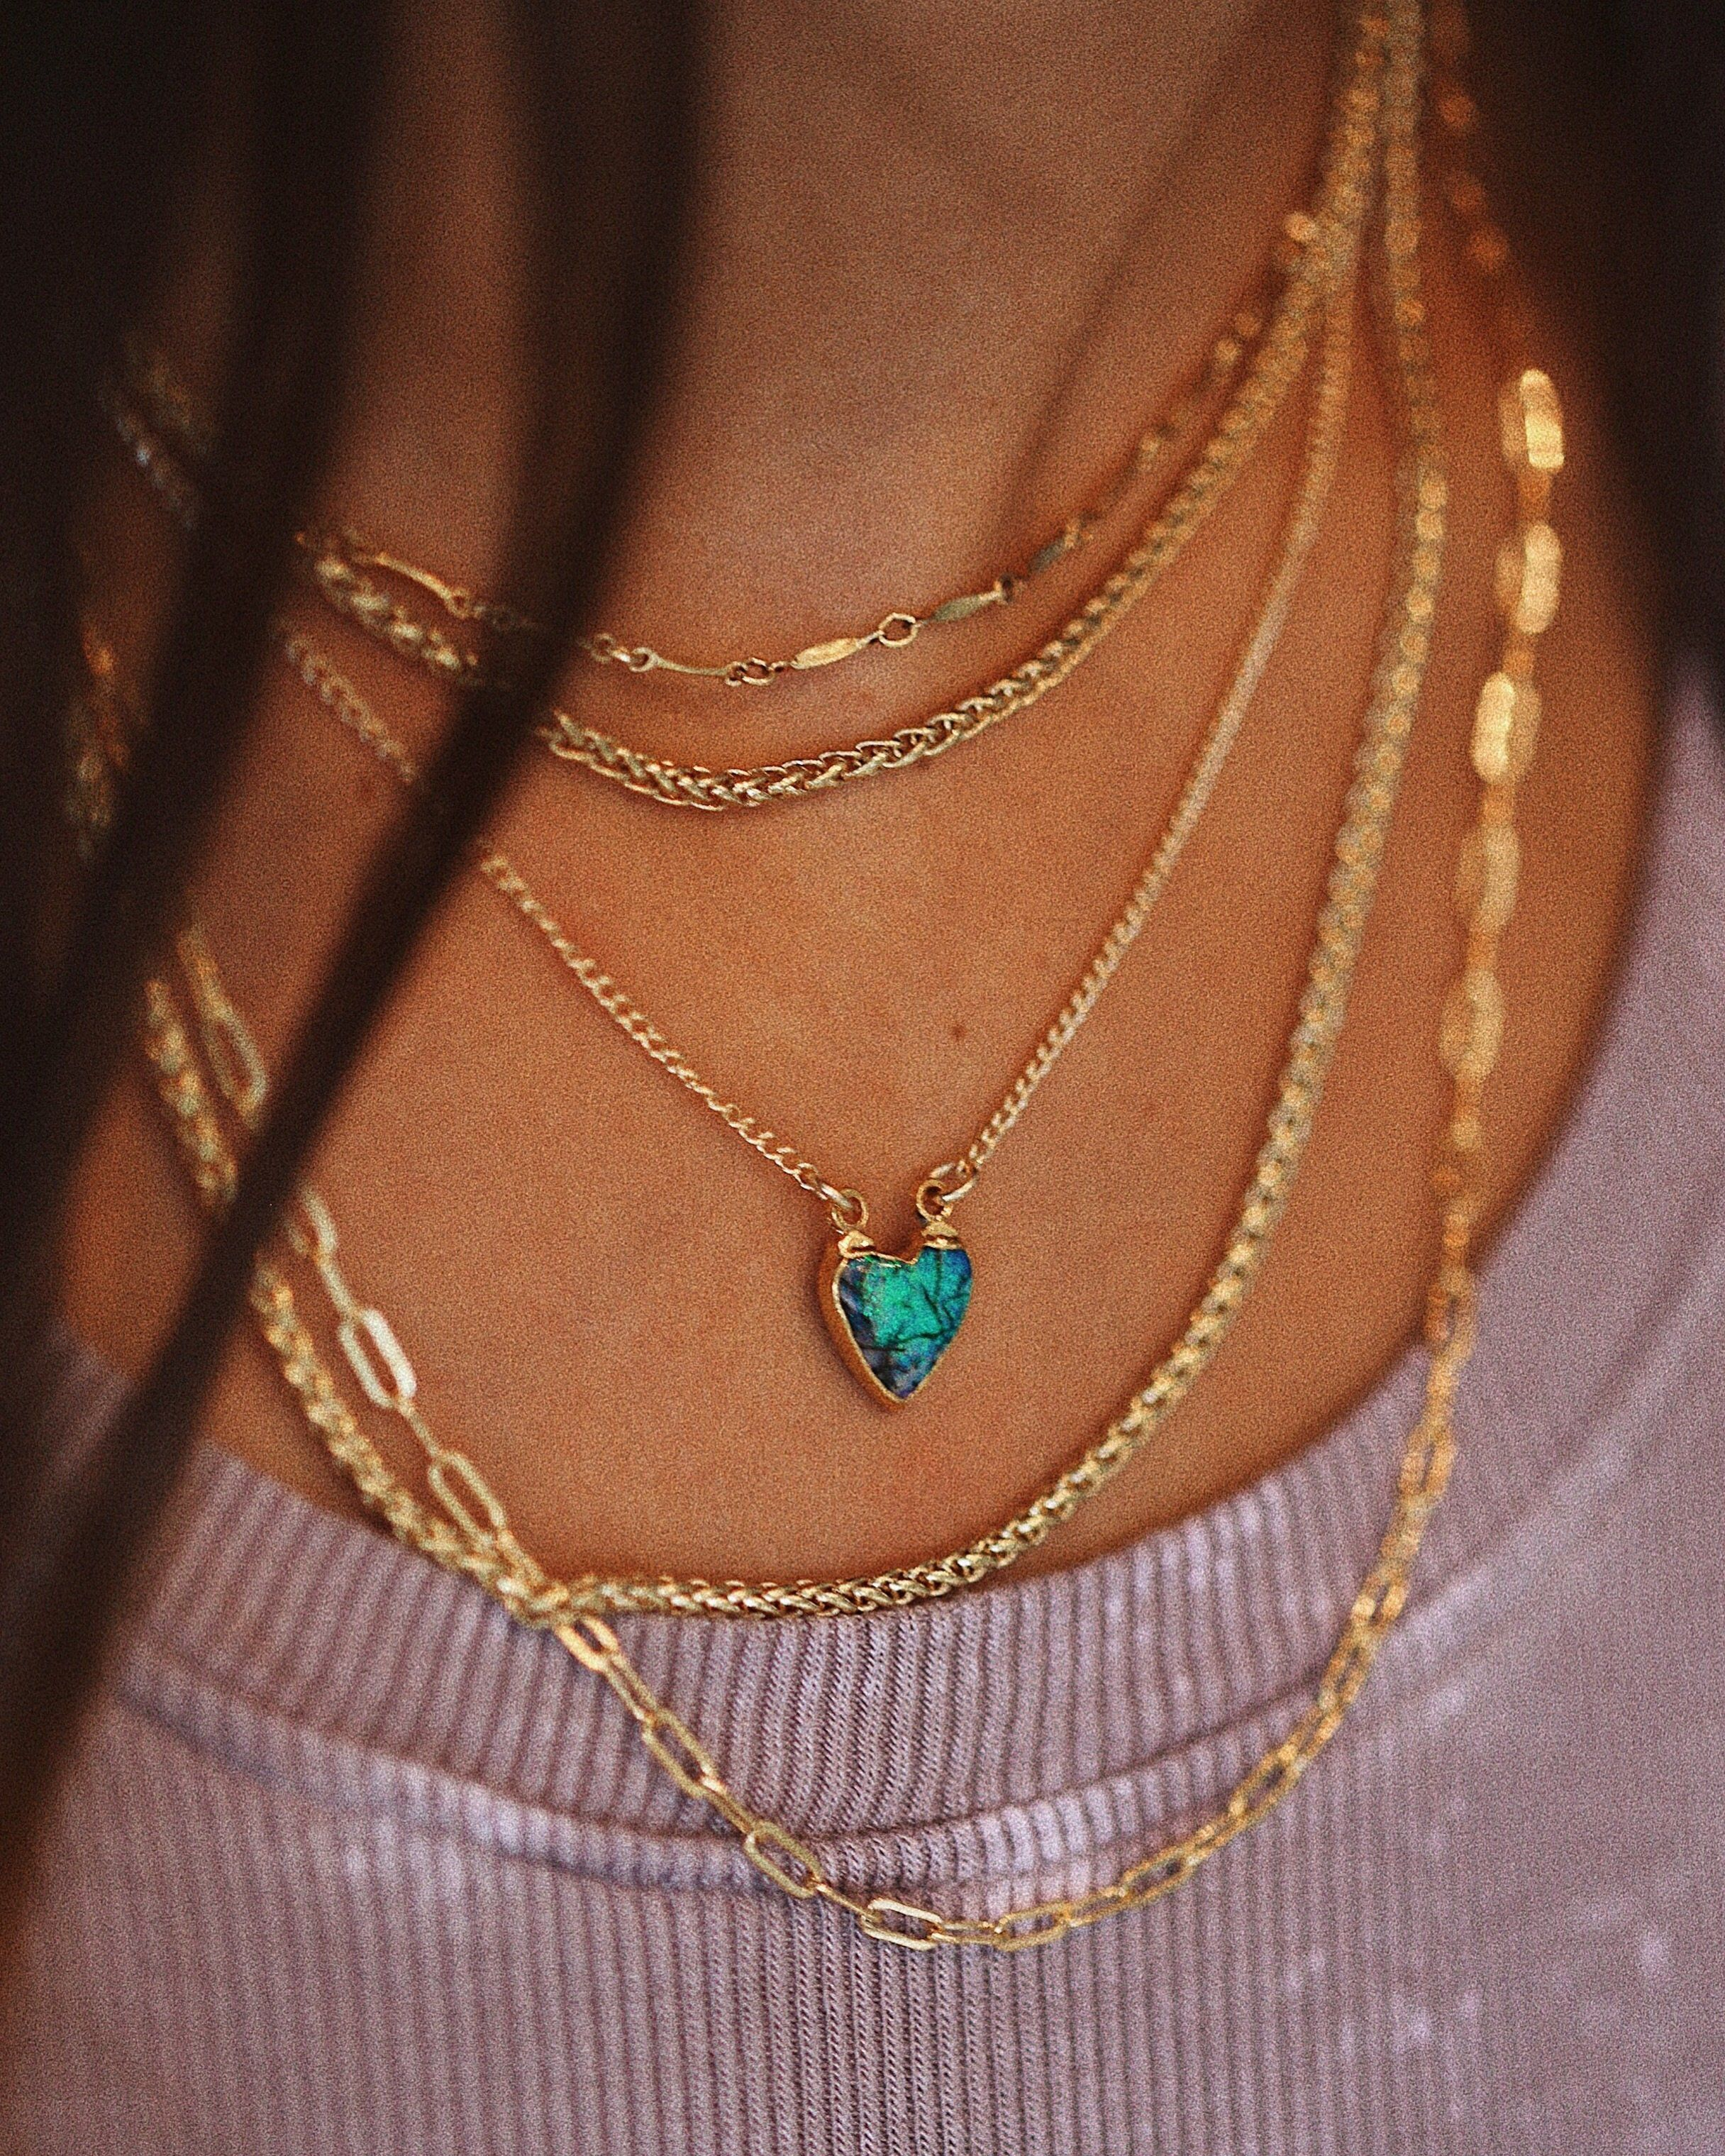 Gold chain necklace elongated manar pinterest joyerías y ropa